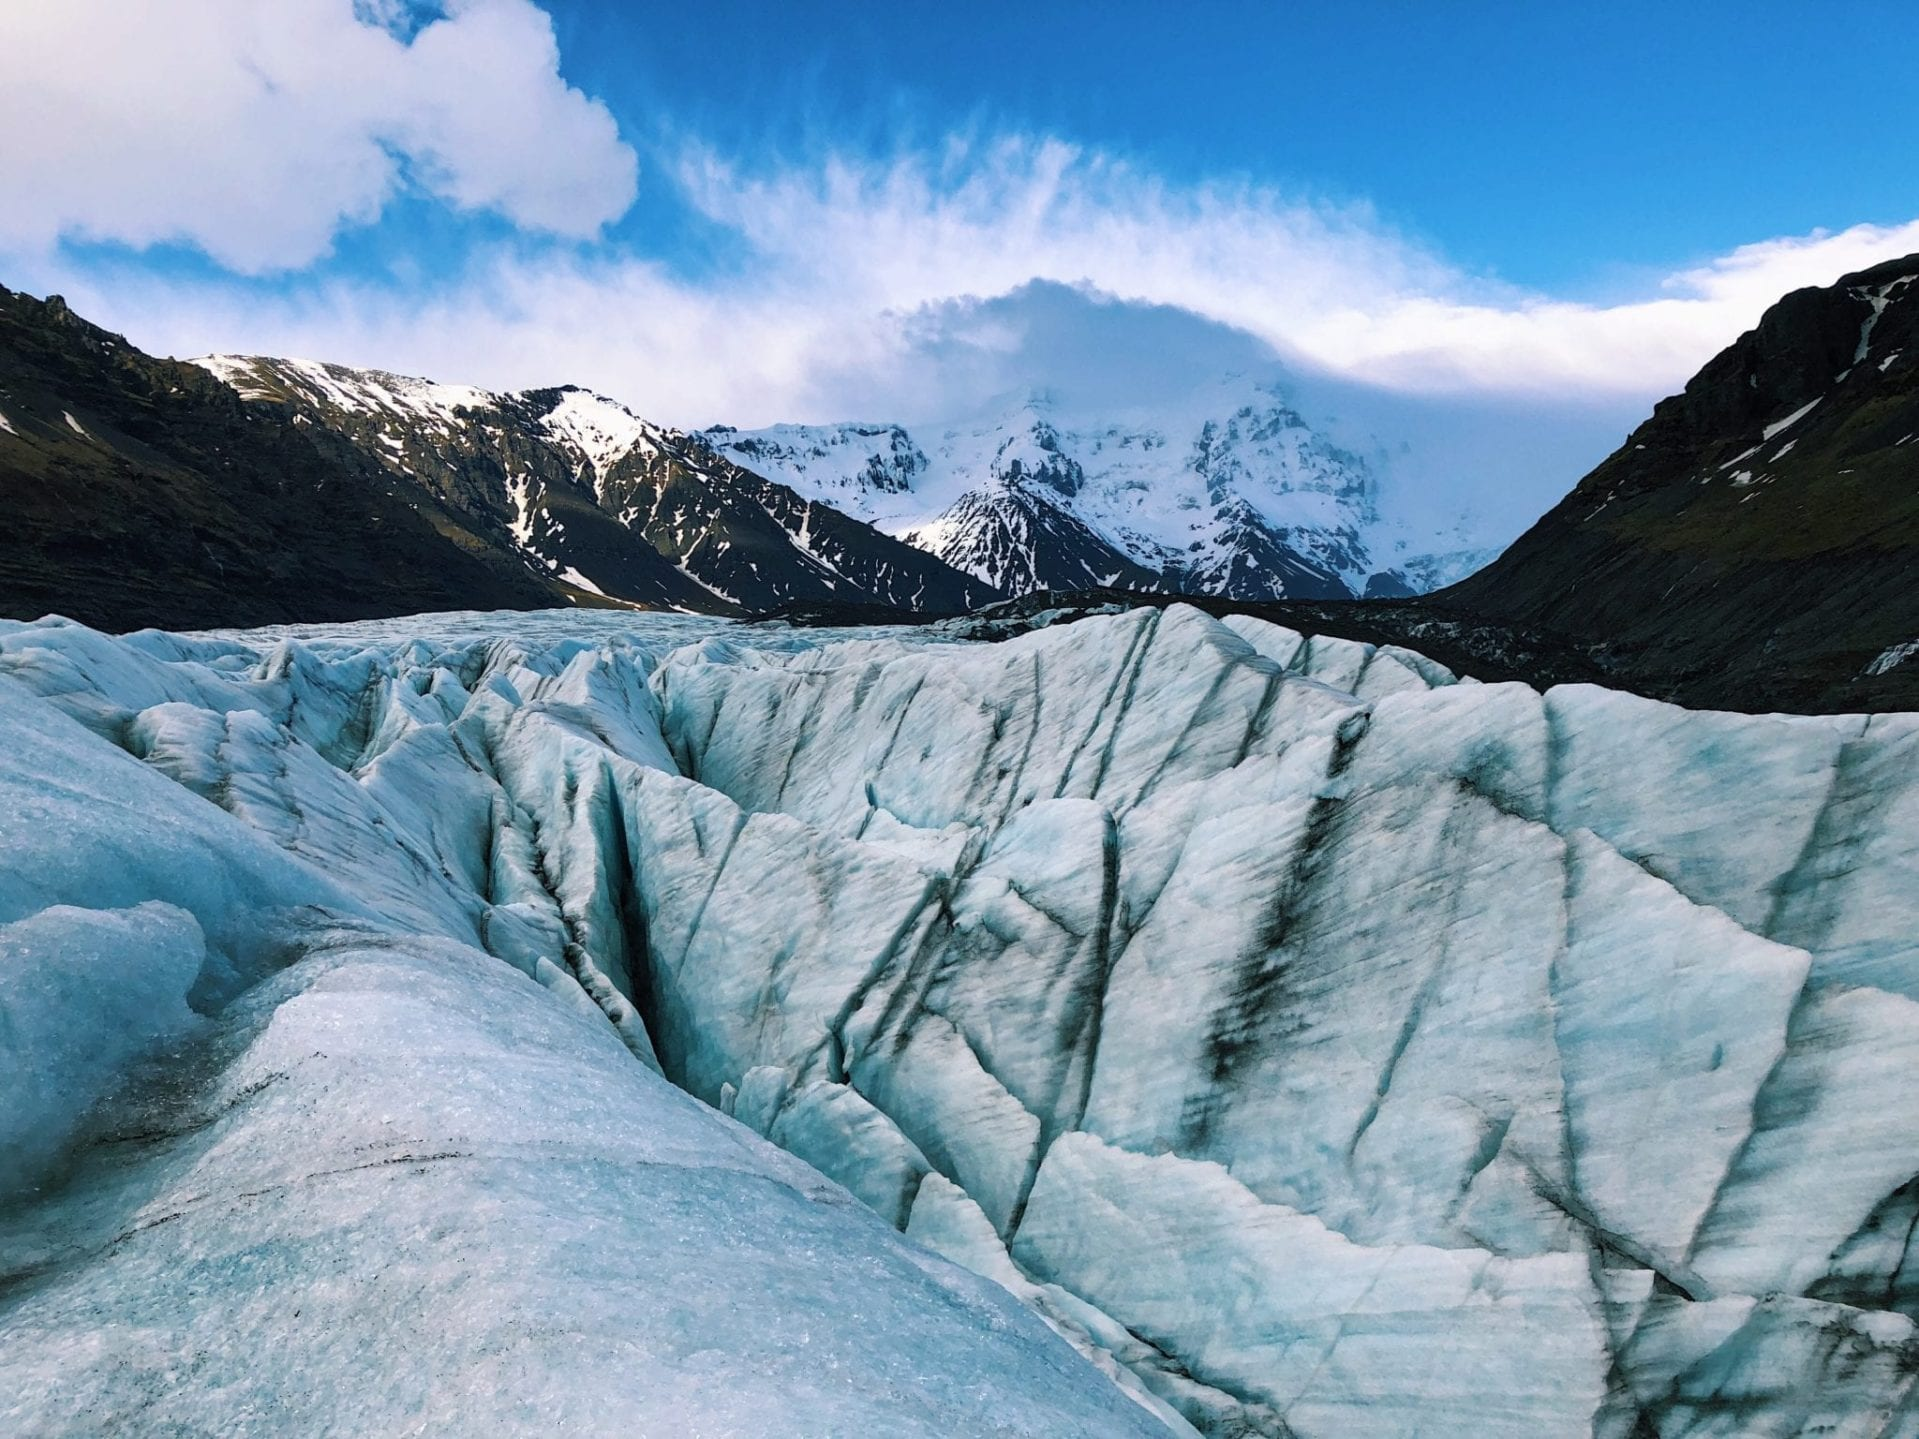 The icy crust of the glacier at Skaftafell.